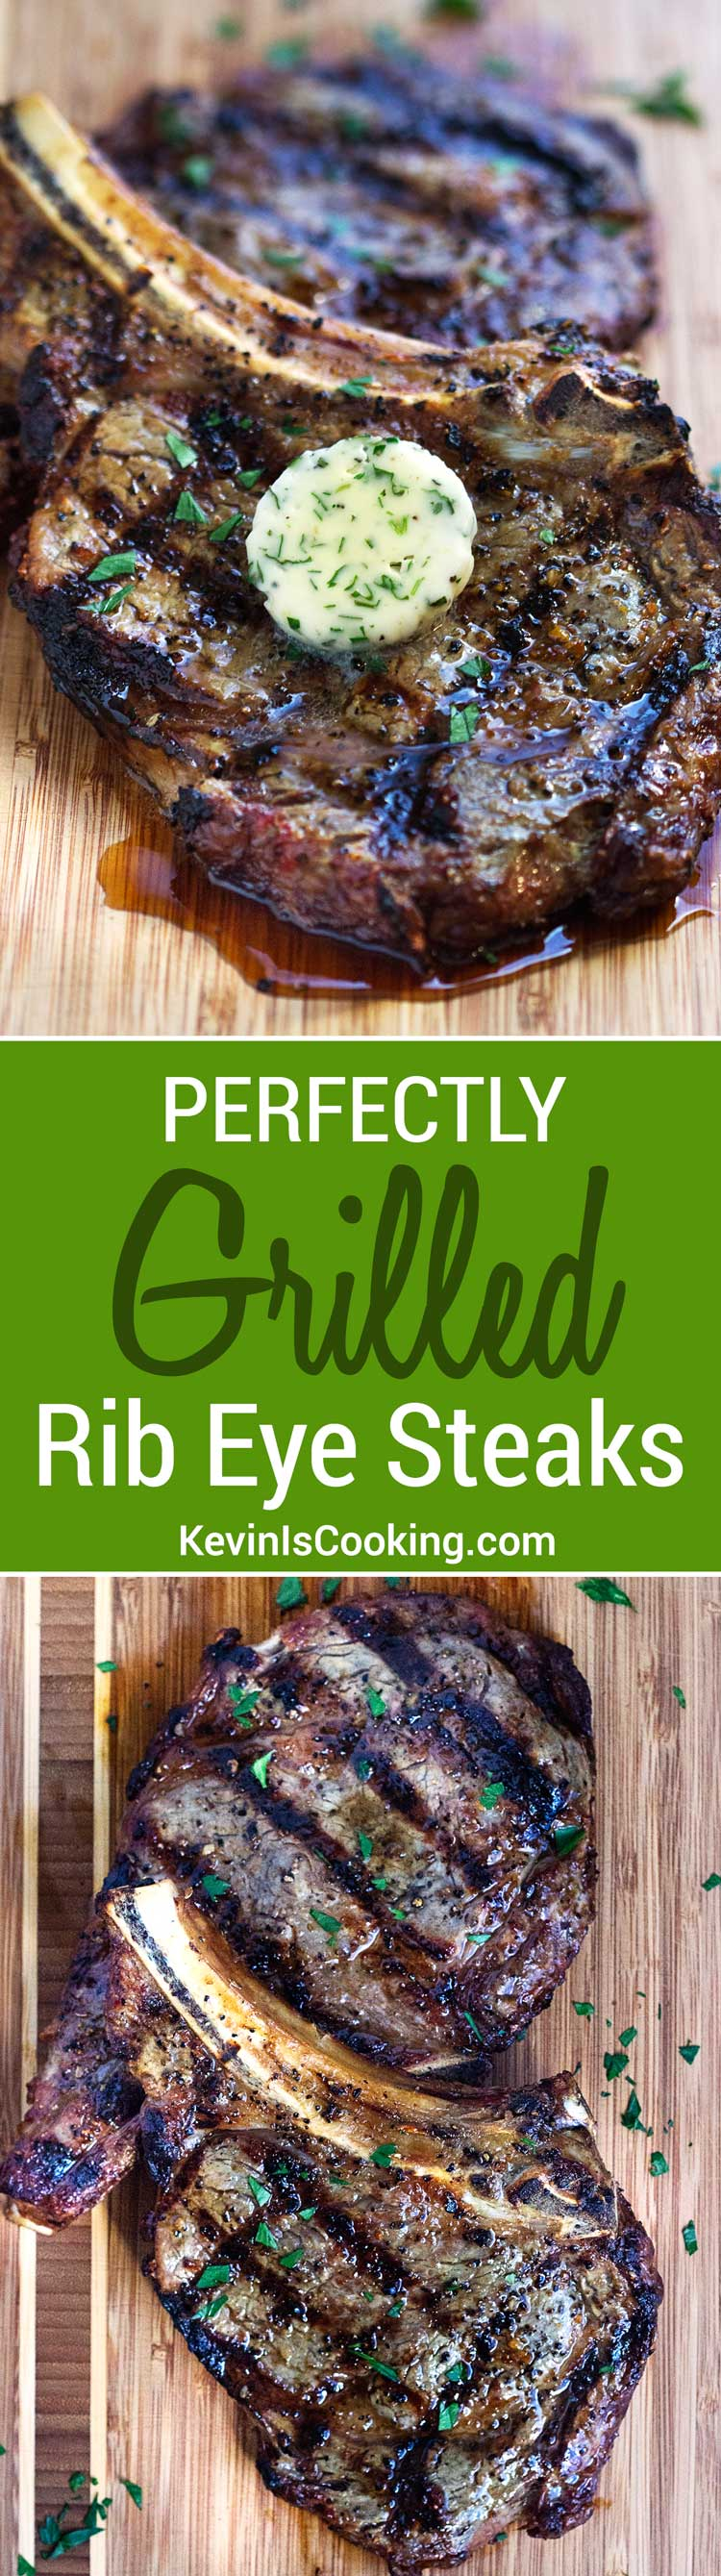 This Perfect Rib Eye Steak has a seasoning that includes dill seed and orange zest and after grilling is topped with compound butter. Steak lover heaven! Always our favorite to grill and the flavor of the seasoning is so good!